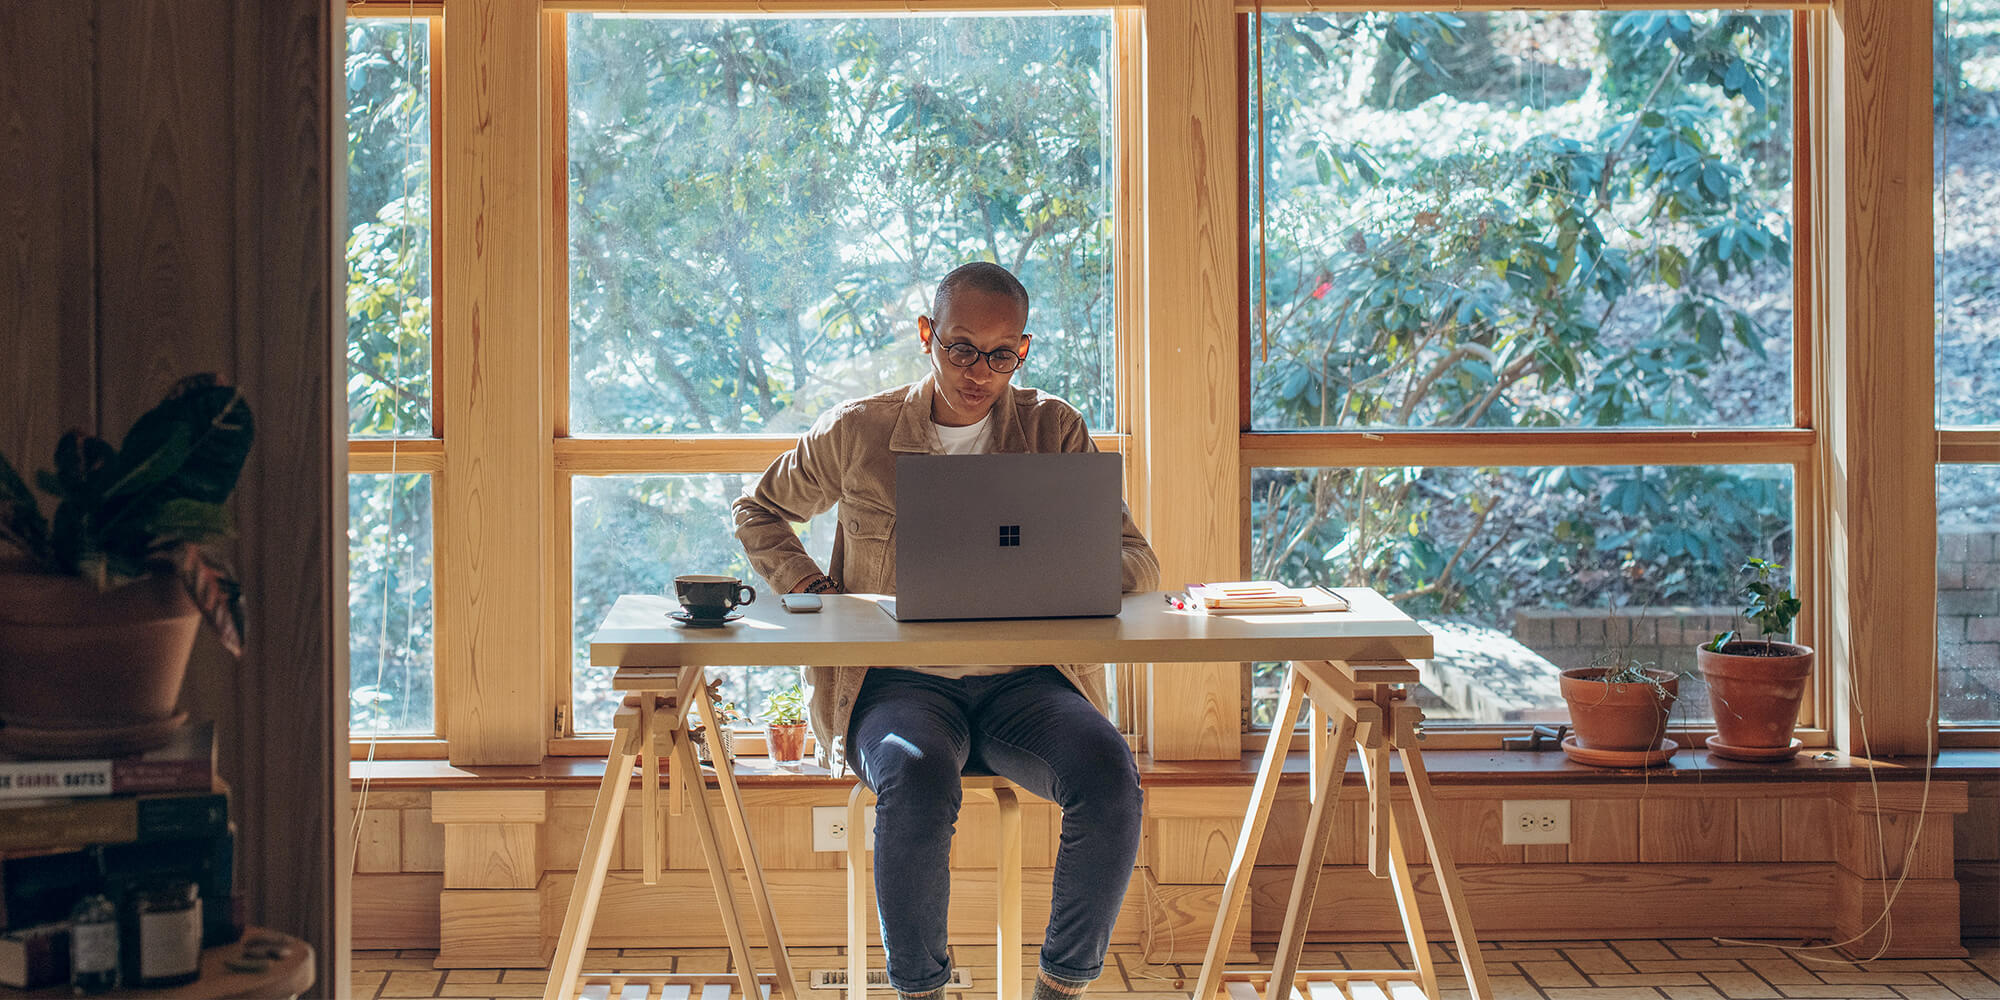 A man sits at a desk in front of a laptop, with open windows behind him revealing a forest.